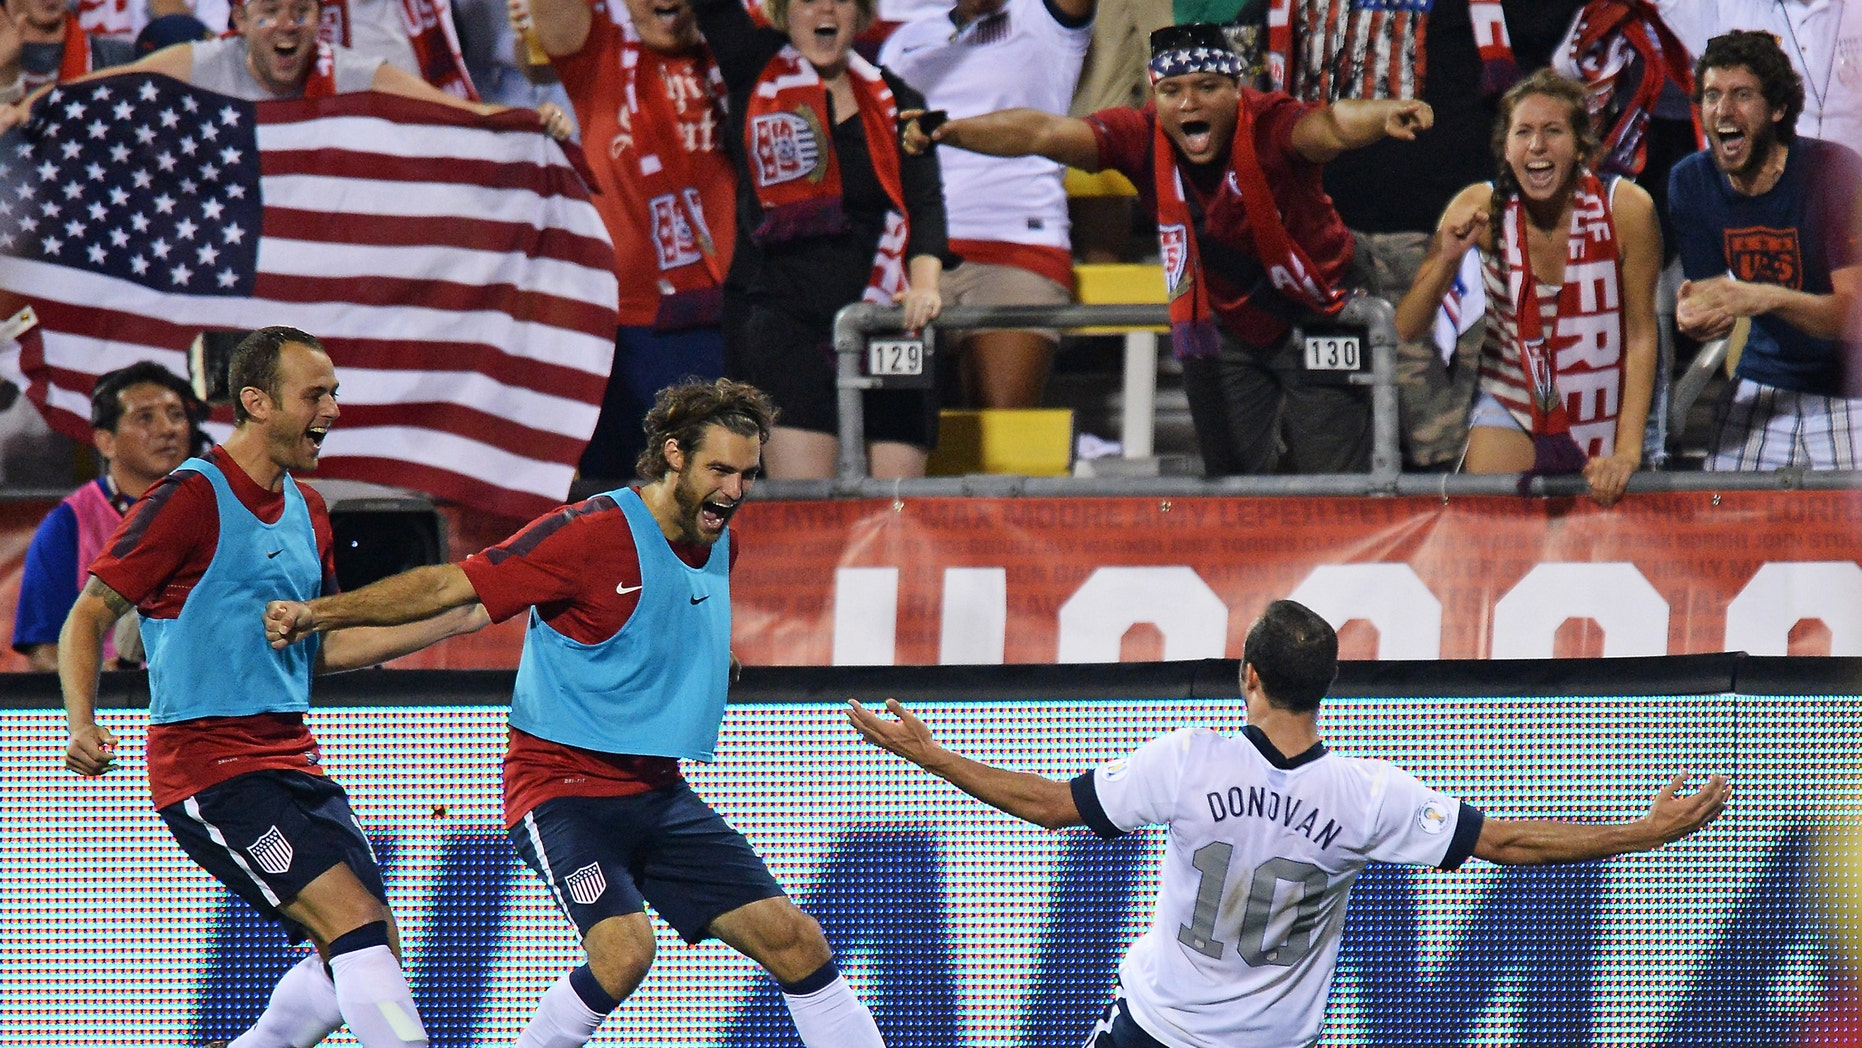 COLUMBUS, OH - SEPTEMBER 10:  Landon Donovan #10 of the United States Men's National Team celebrates his second half goal against Mexico with teammates Brad Davis #17 of the United States MenÃs National Team, far left, and Graham Zusi #19 of the United States MenÃs National Team, middle, at Columbus Crew Stadium on September 10, 2013 in Columbus, Ohio. The United States defeated Mexico 2-0.  (Photo by Jamie Sabau/Getty Images)